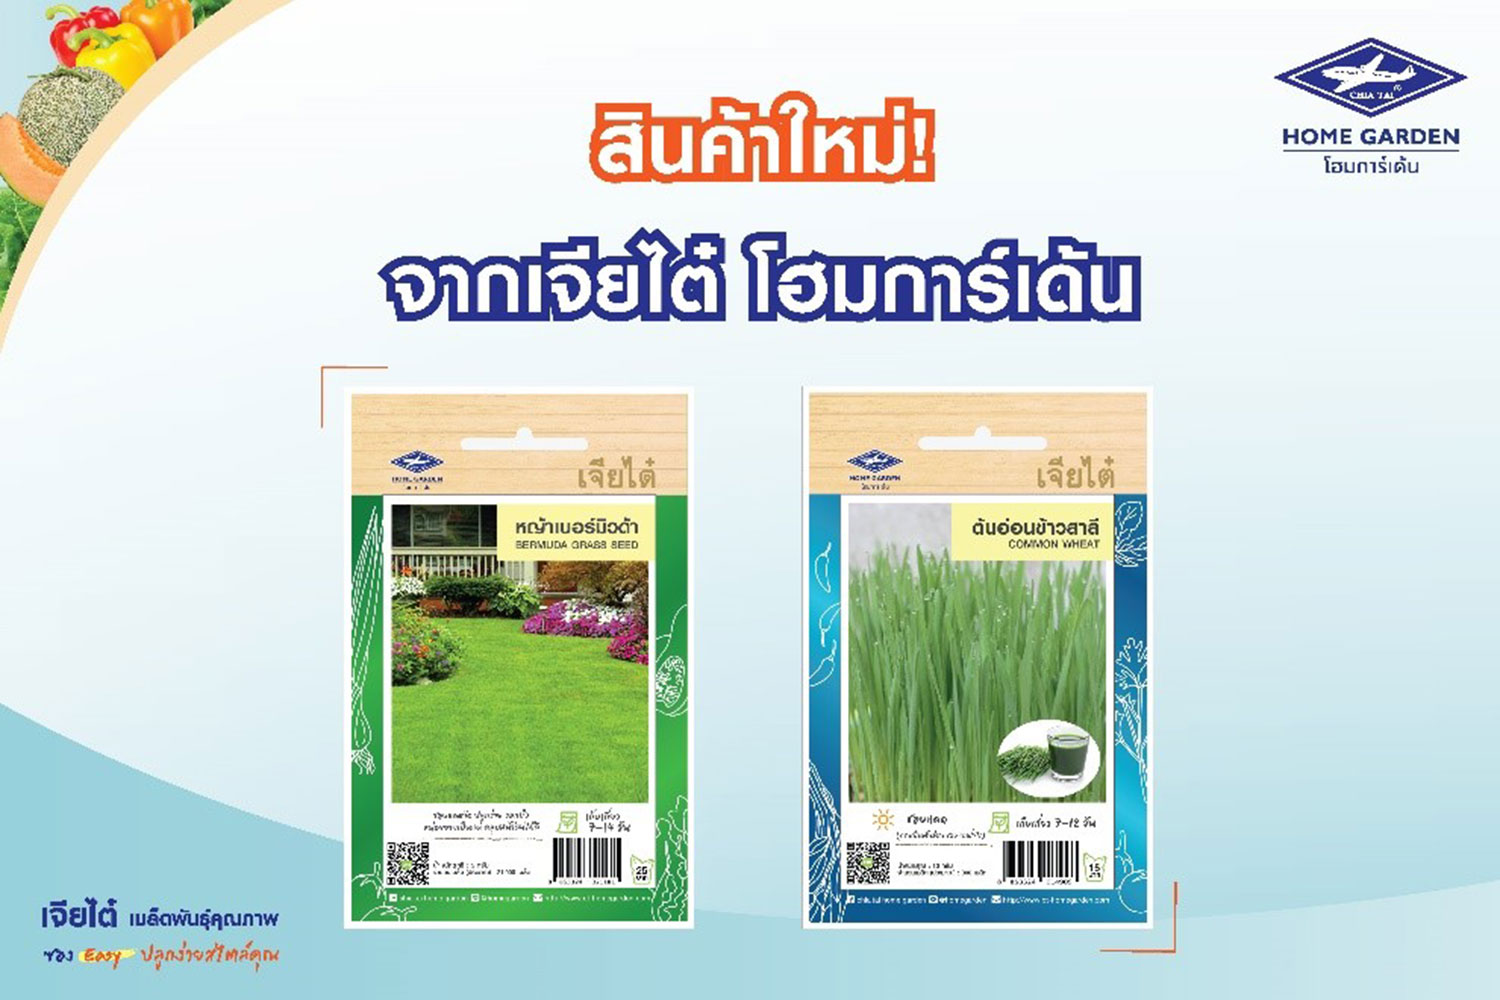 Chia Tai Home Garden launches new products and exciting deals